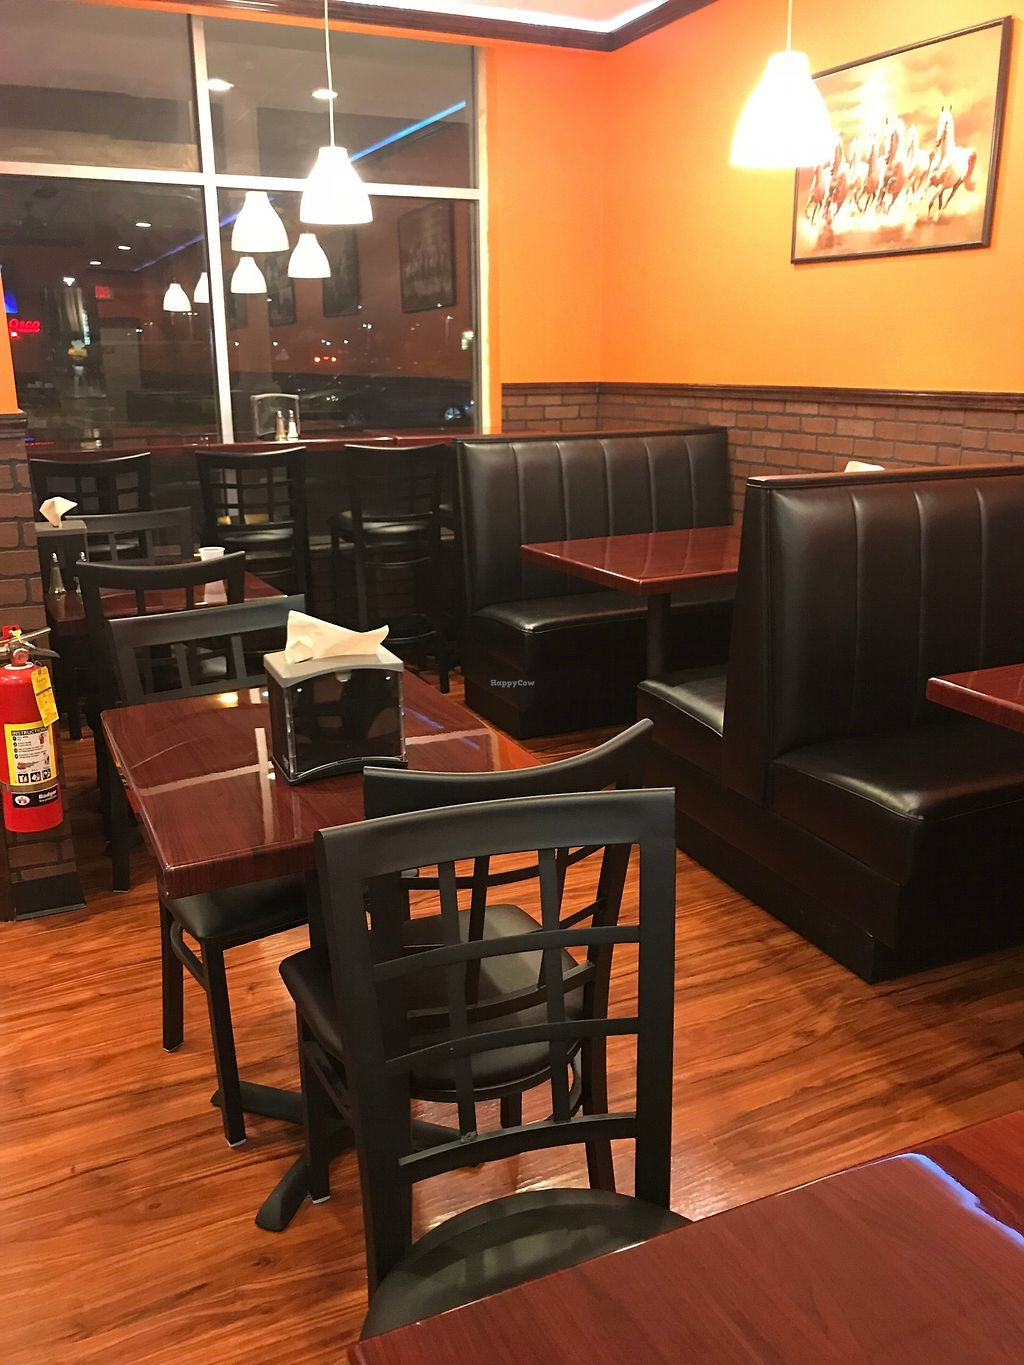 """Photo of The Great Indian Cafe and Fast Food  by <a href=""""/members/profile/TomG"""">TomG</a> <br/>Interior seating <br/> January 11, 2018  - <a href='/contact/abuse/image/20889/345555'>Report</a>"""